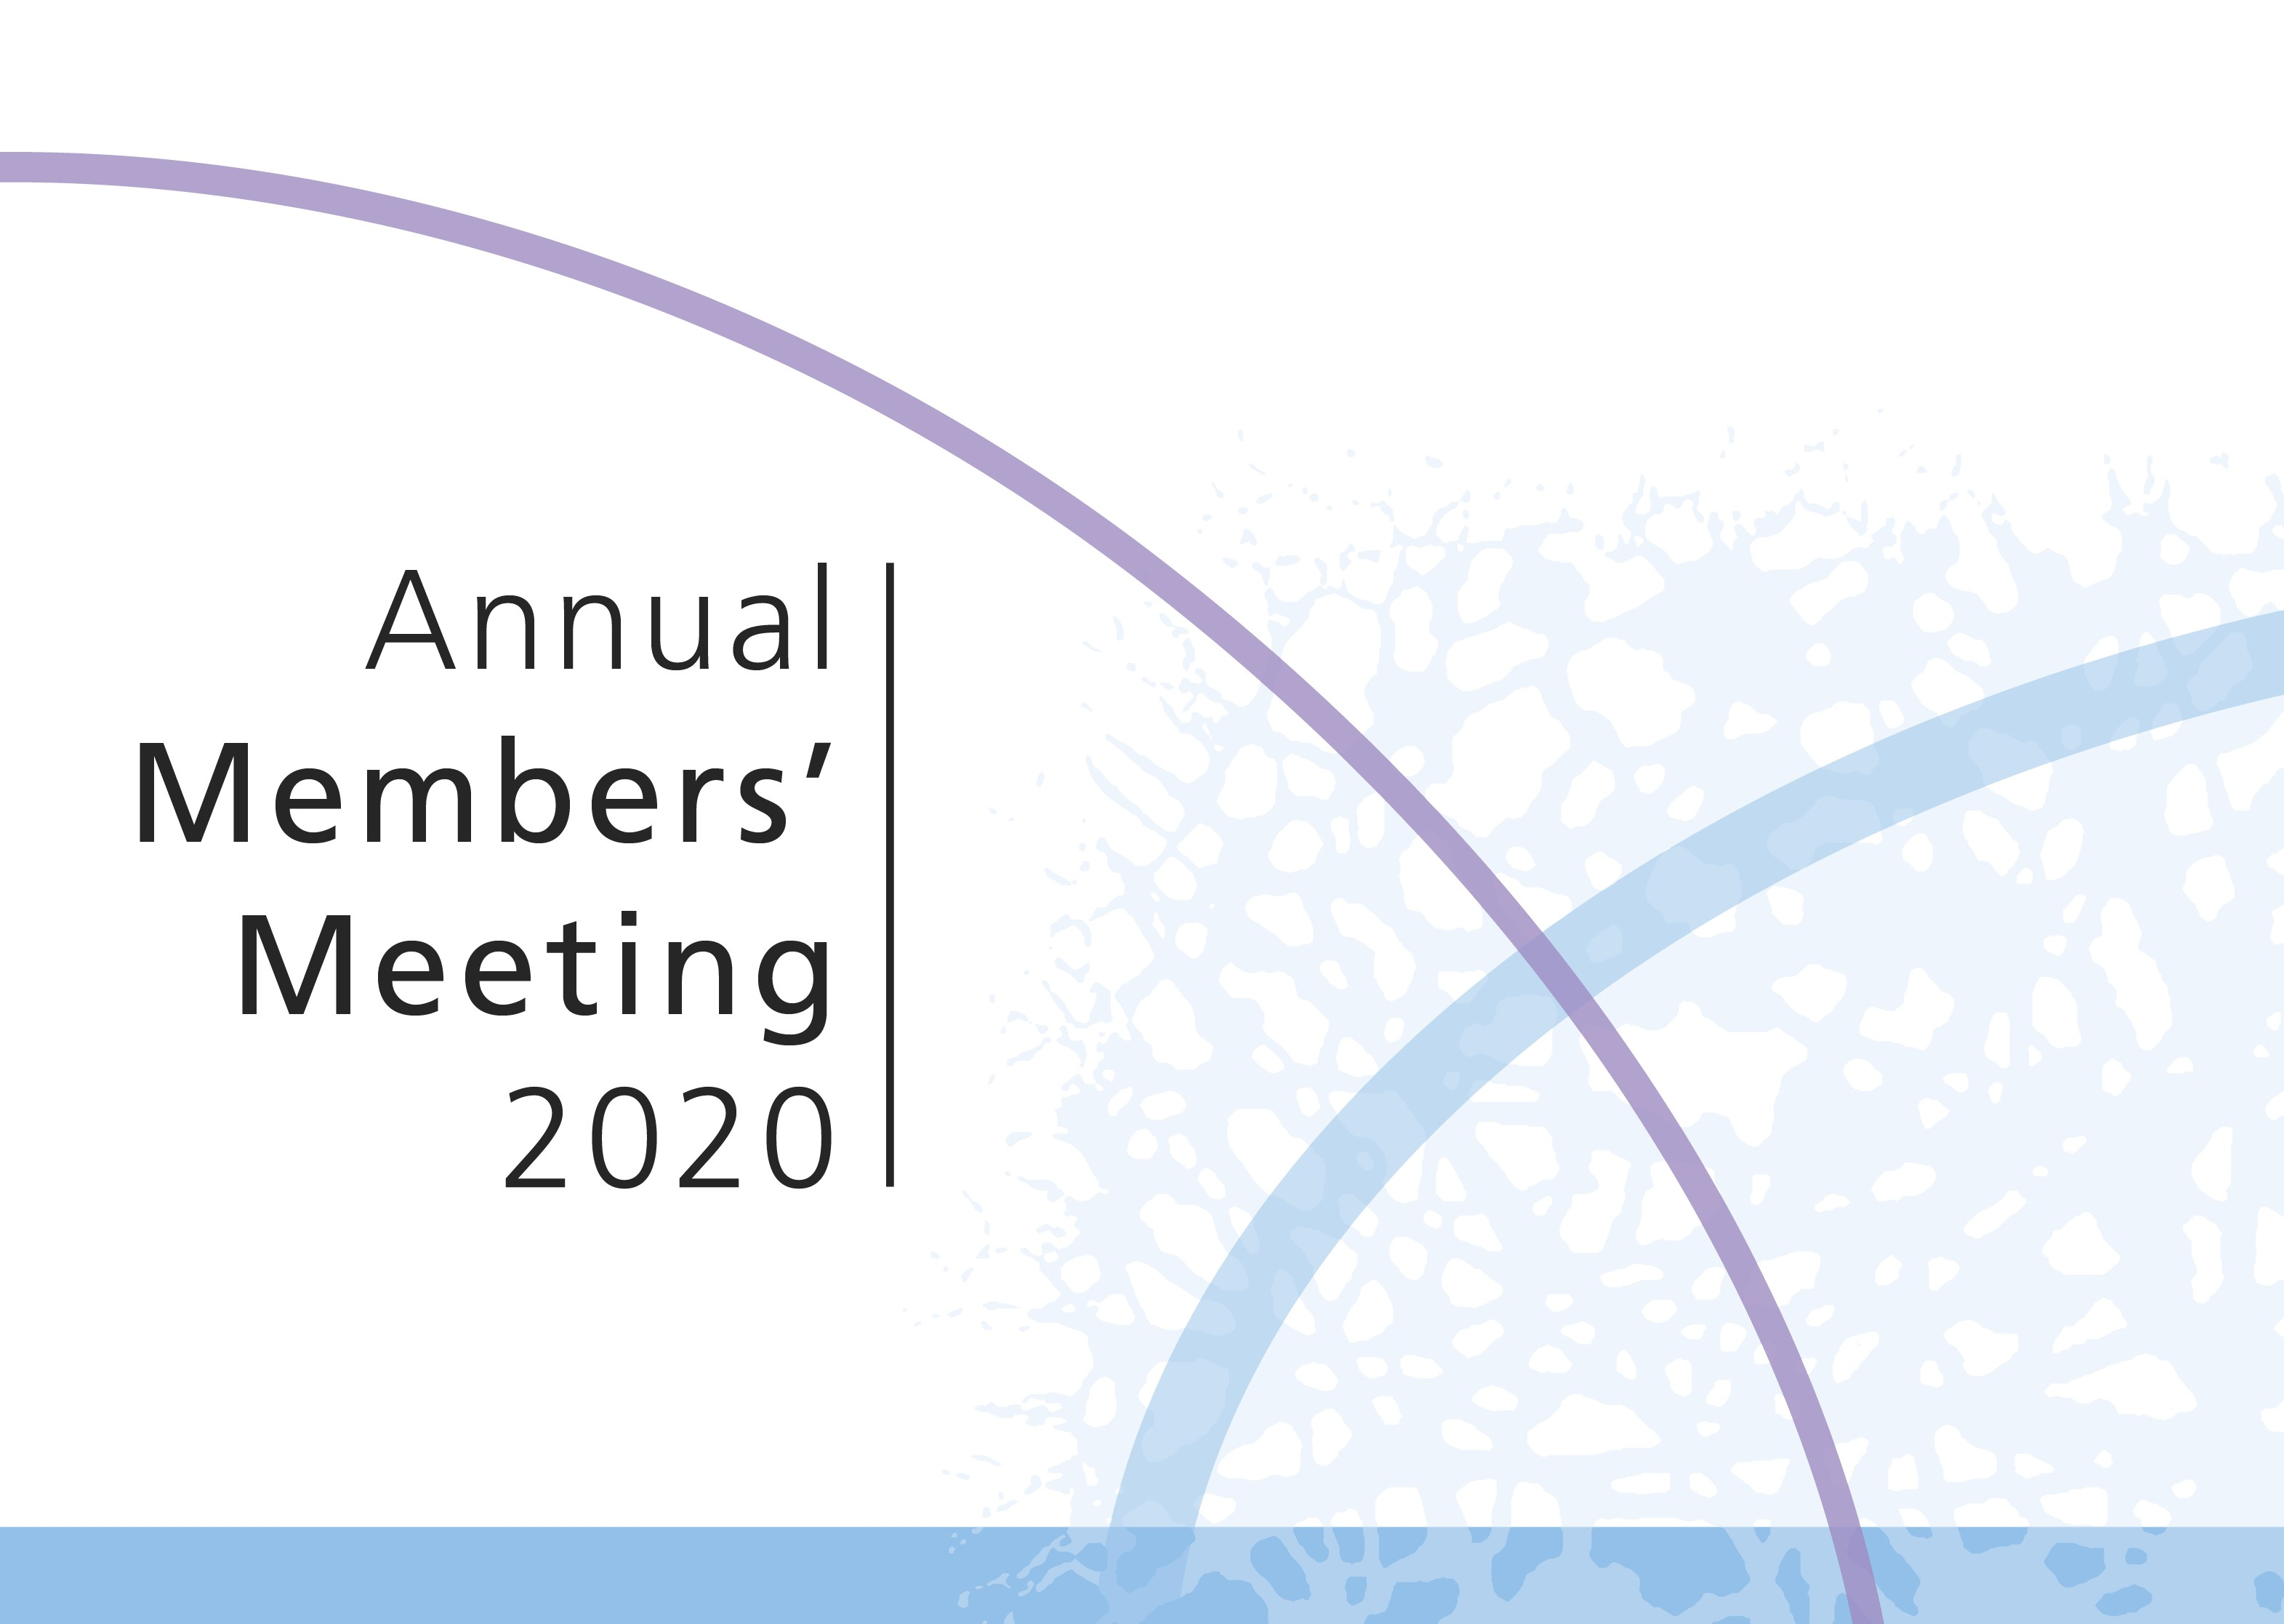 Annual Members' Meeting 2020